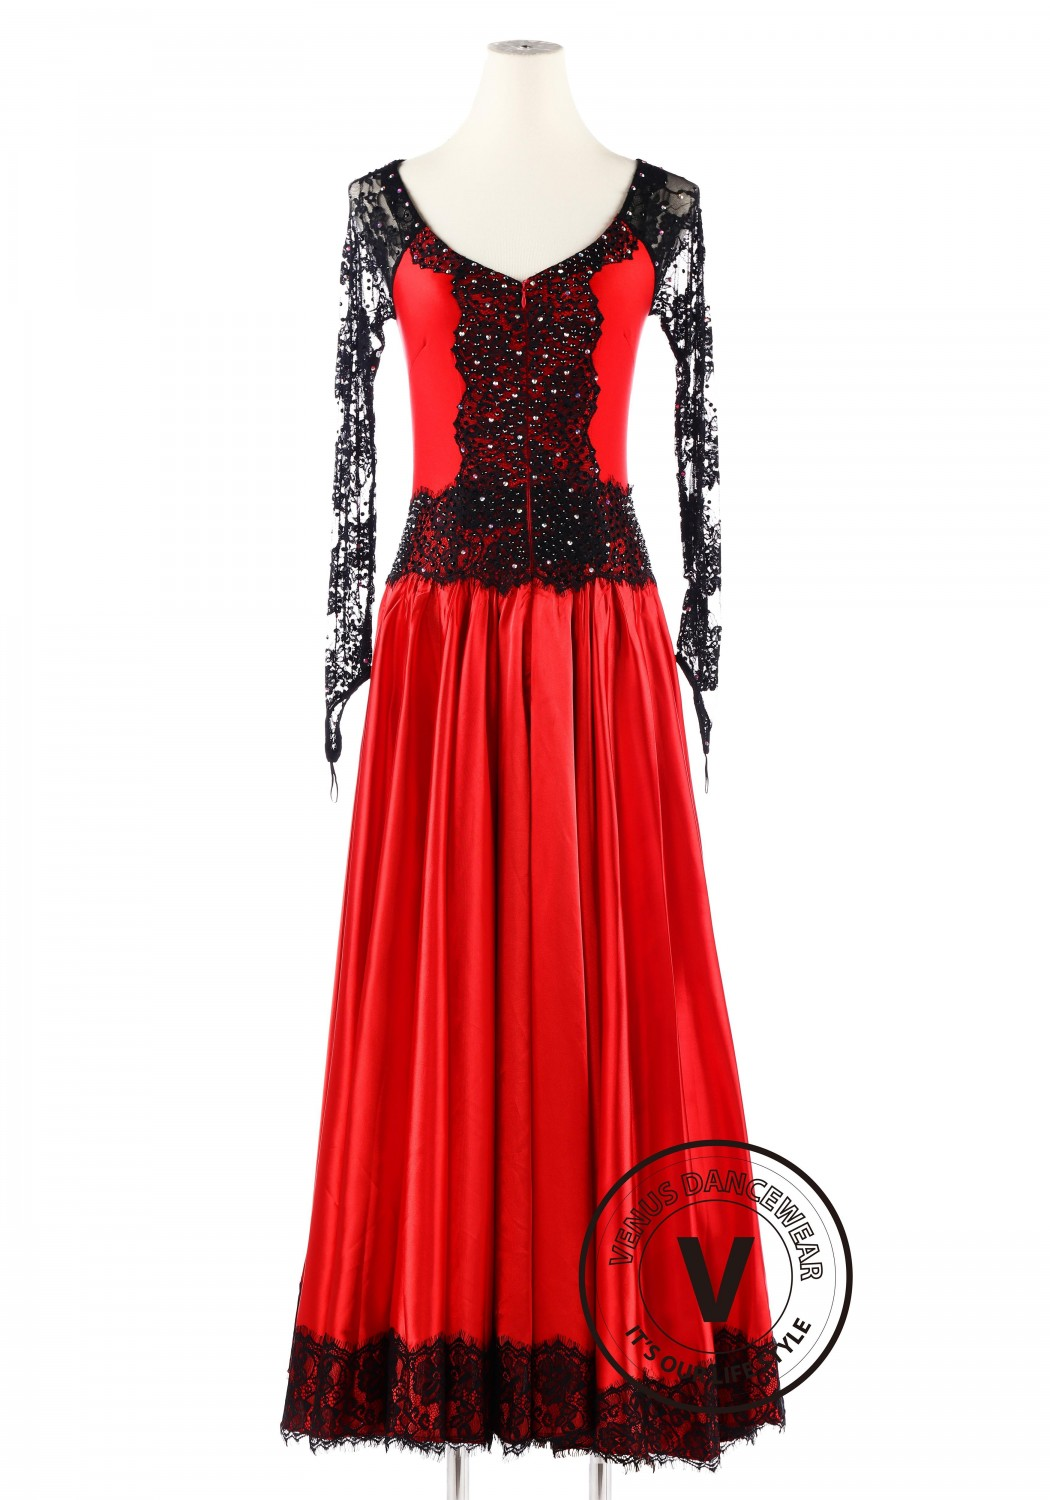 Red Black Lace Competition Smooth Waltz Dance Dress